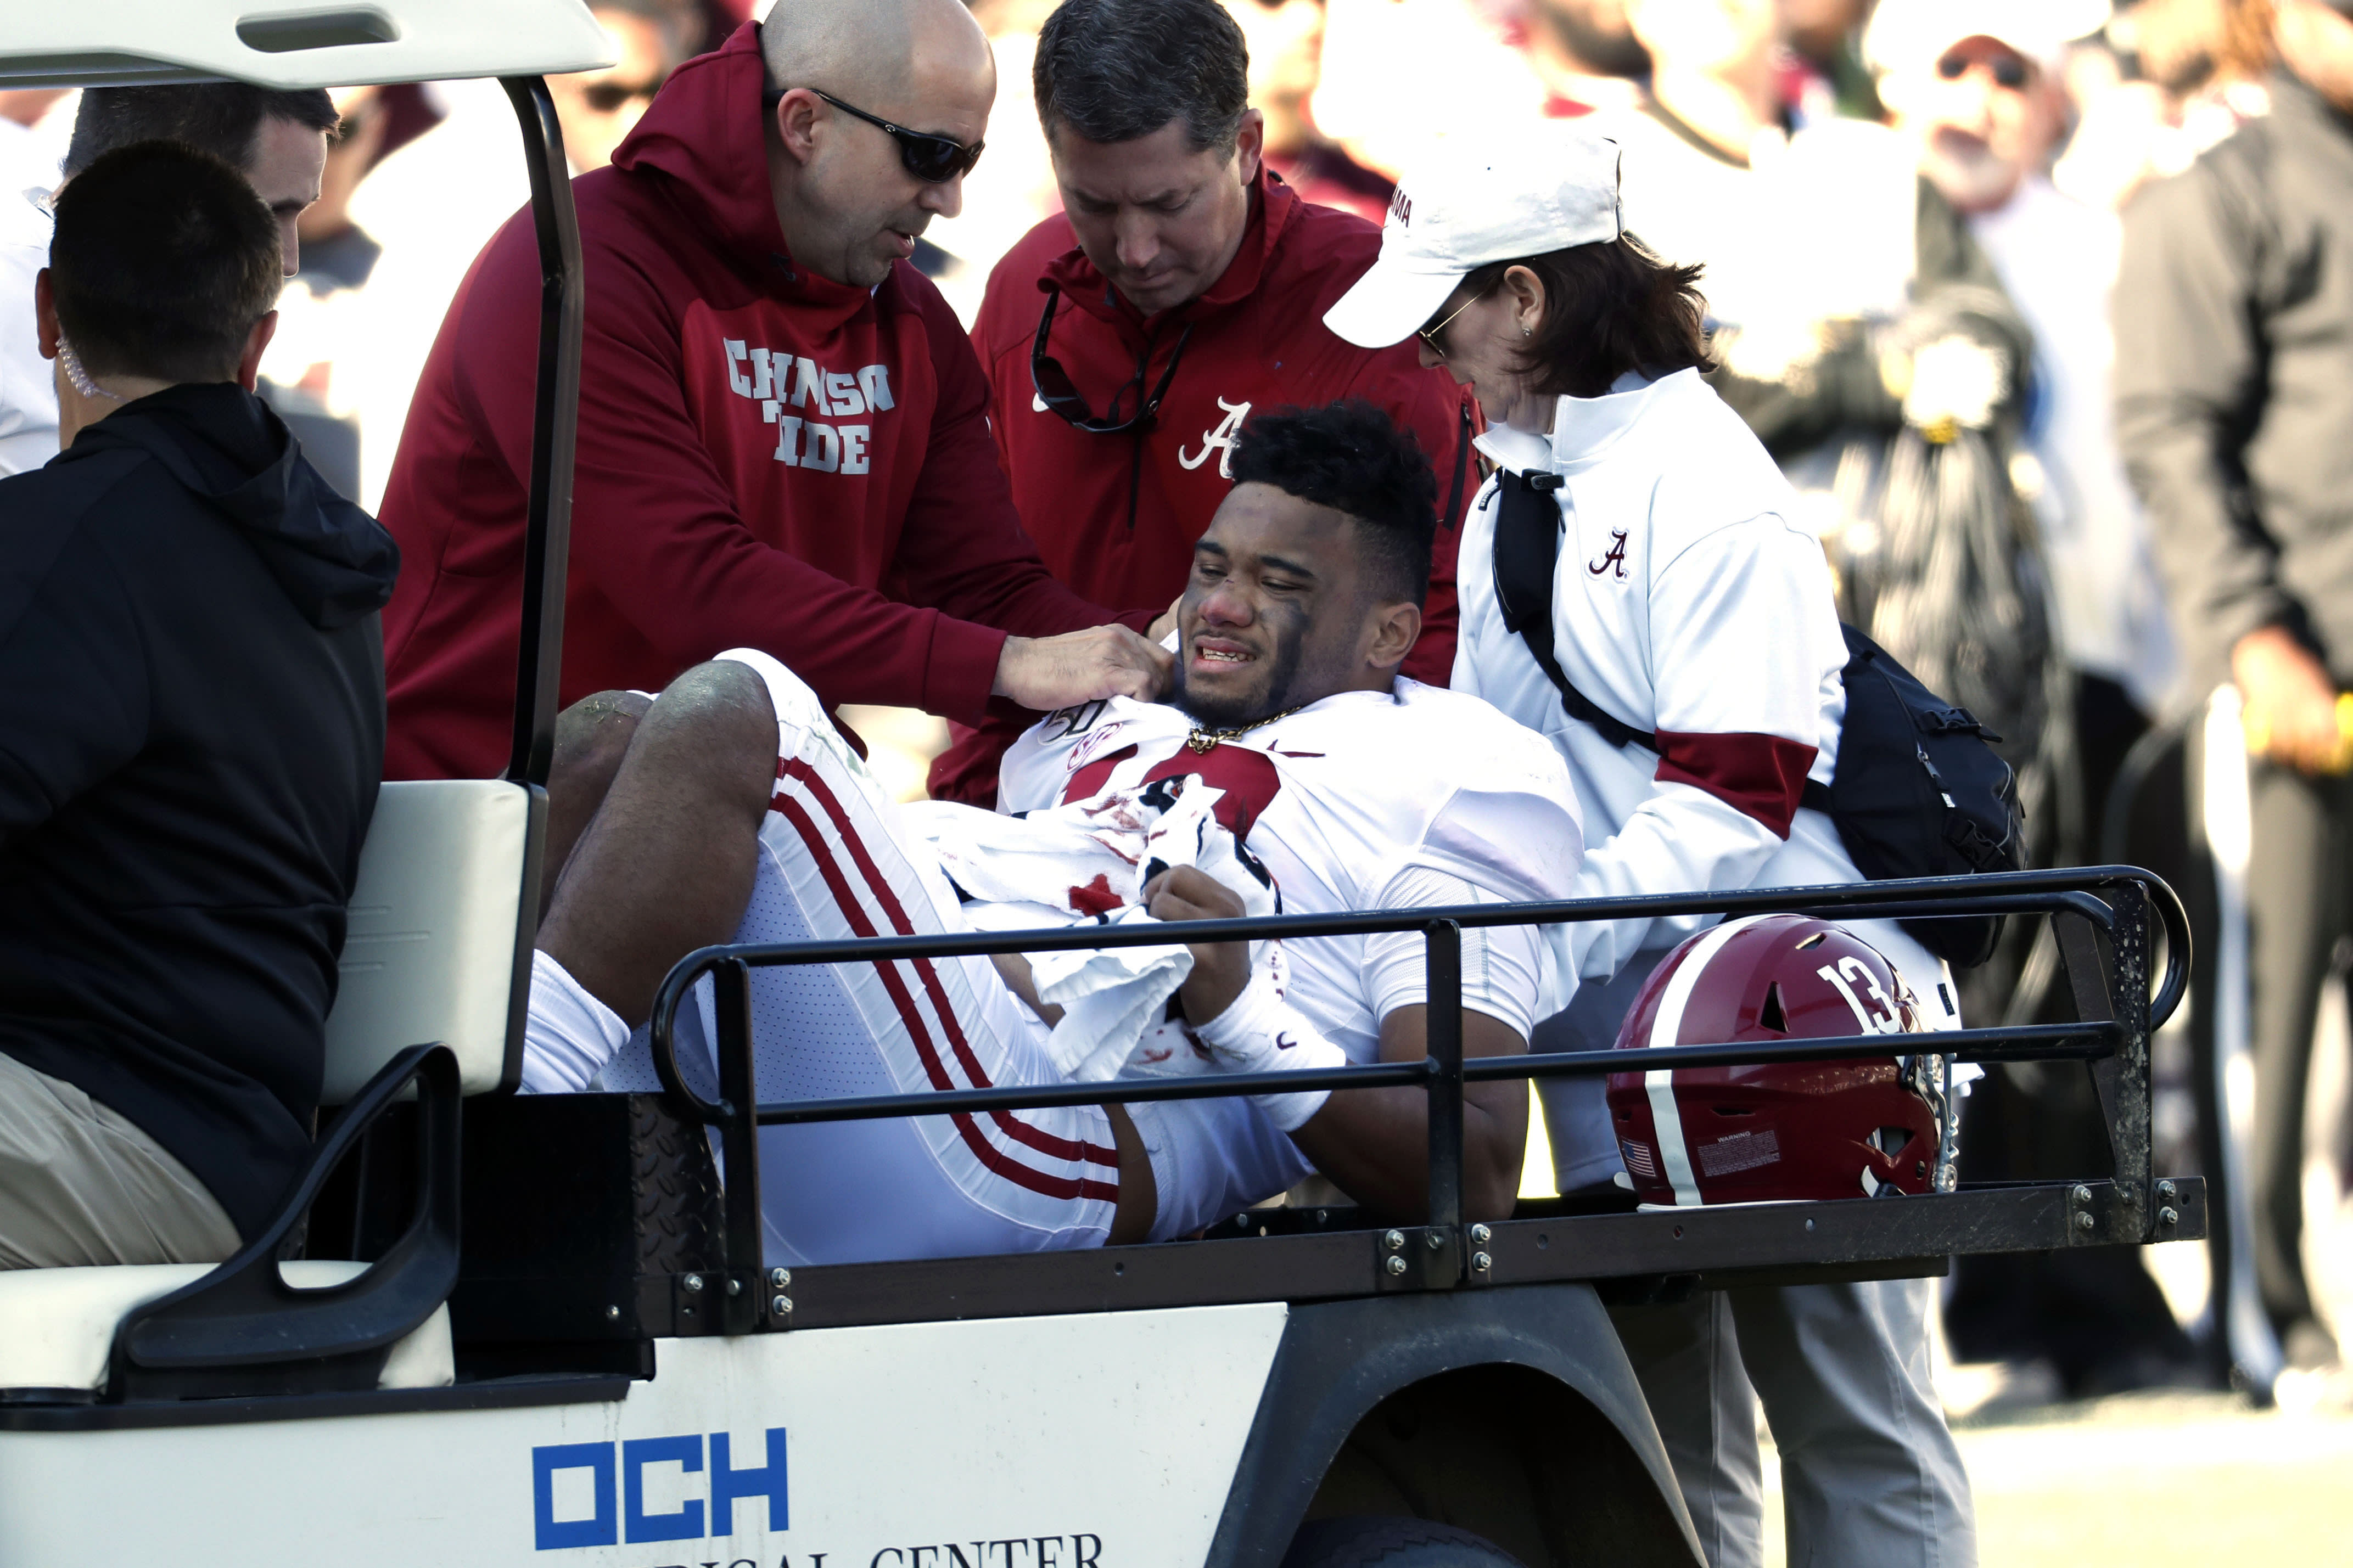 Tua Tagovailoa injury could be devastating for his NFL Draft stock